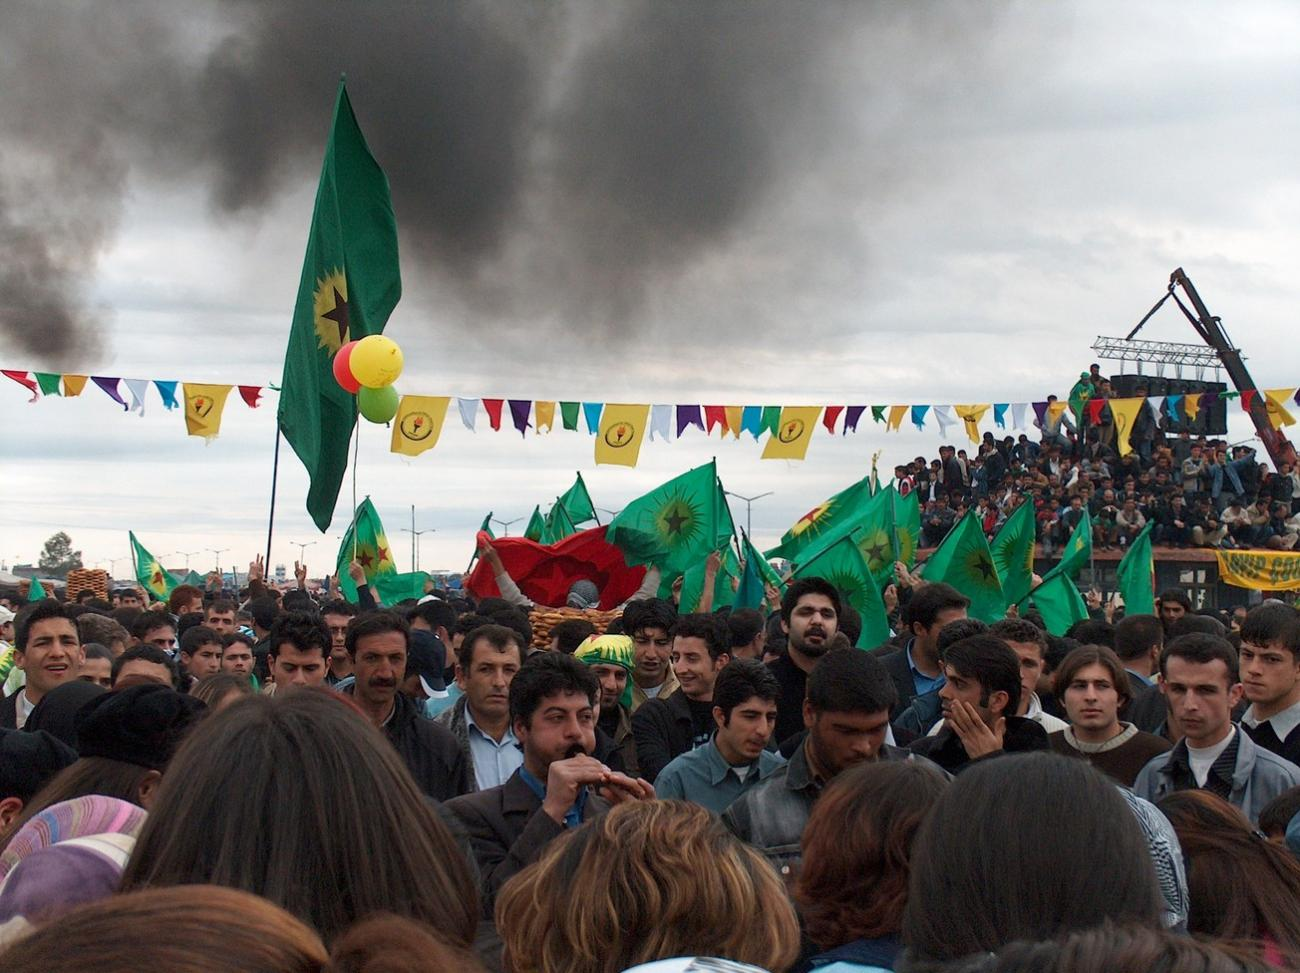 Newroz in Diyarbakir (March 2005)